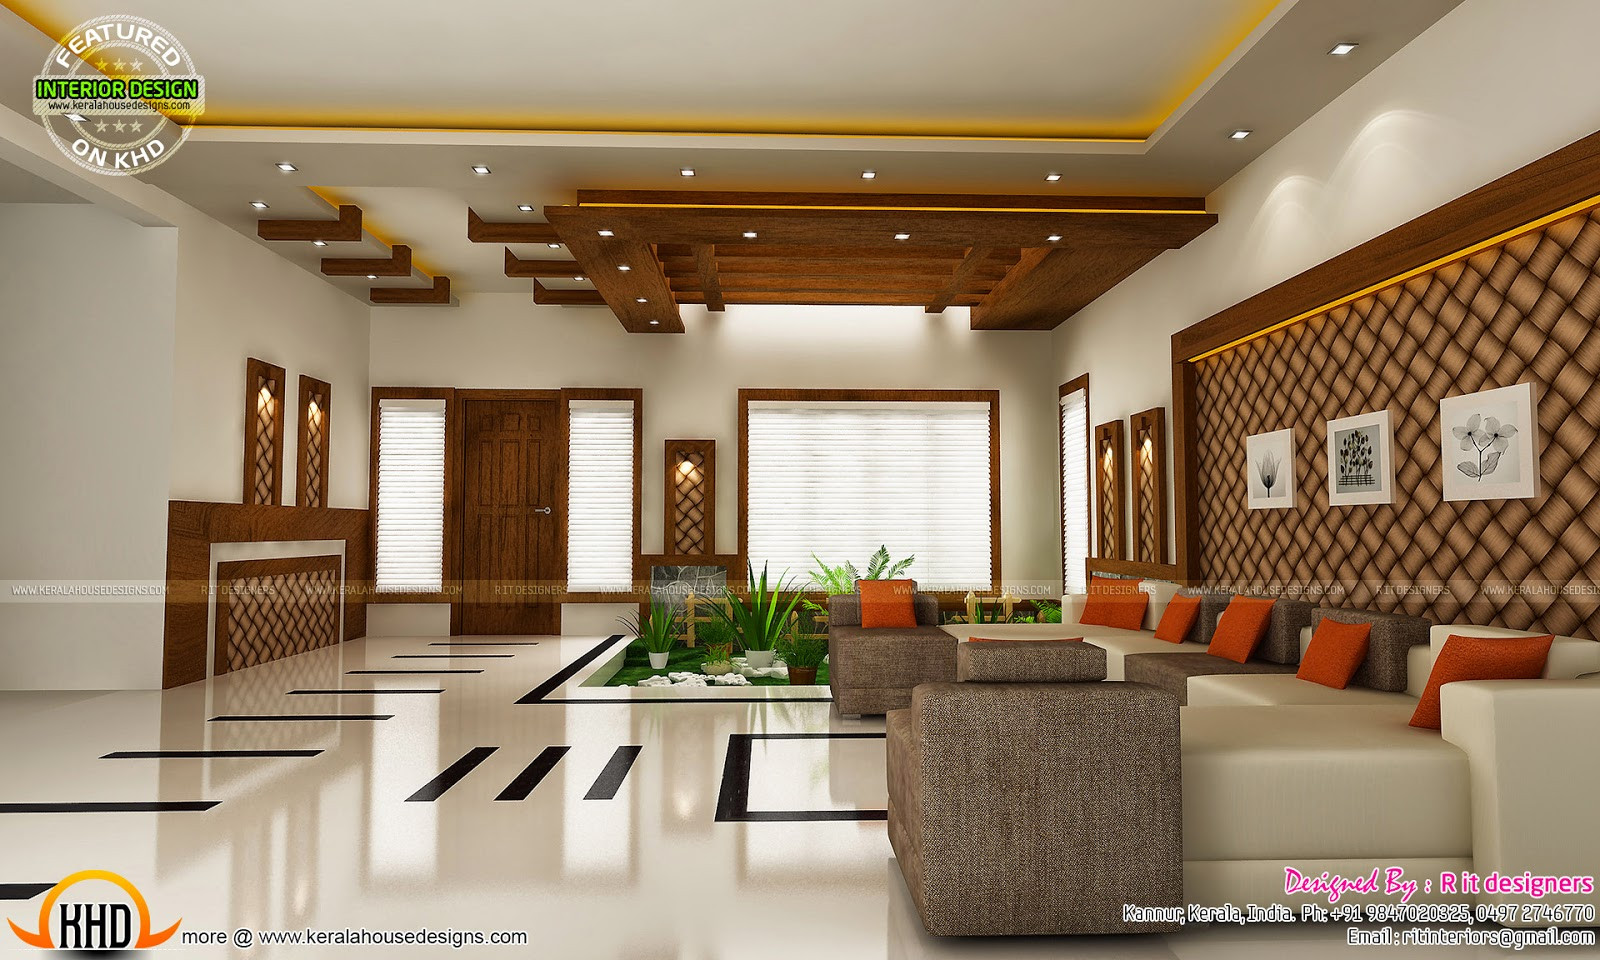 Modern and unique dining kitchen interior kerala home for Kerala house living room interior design